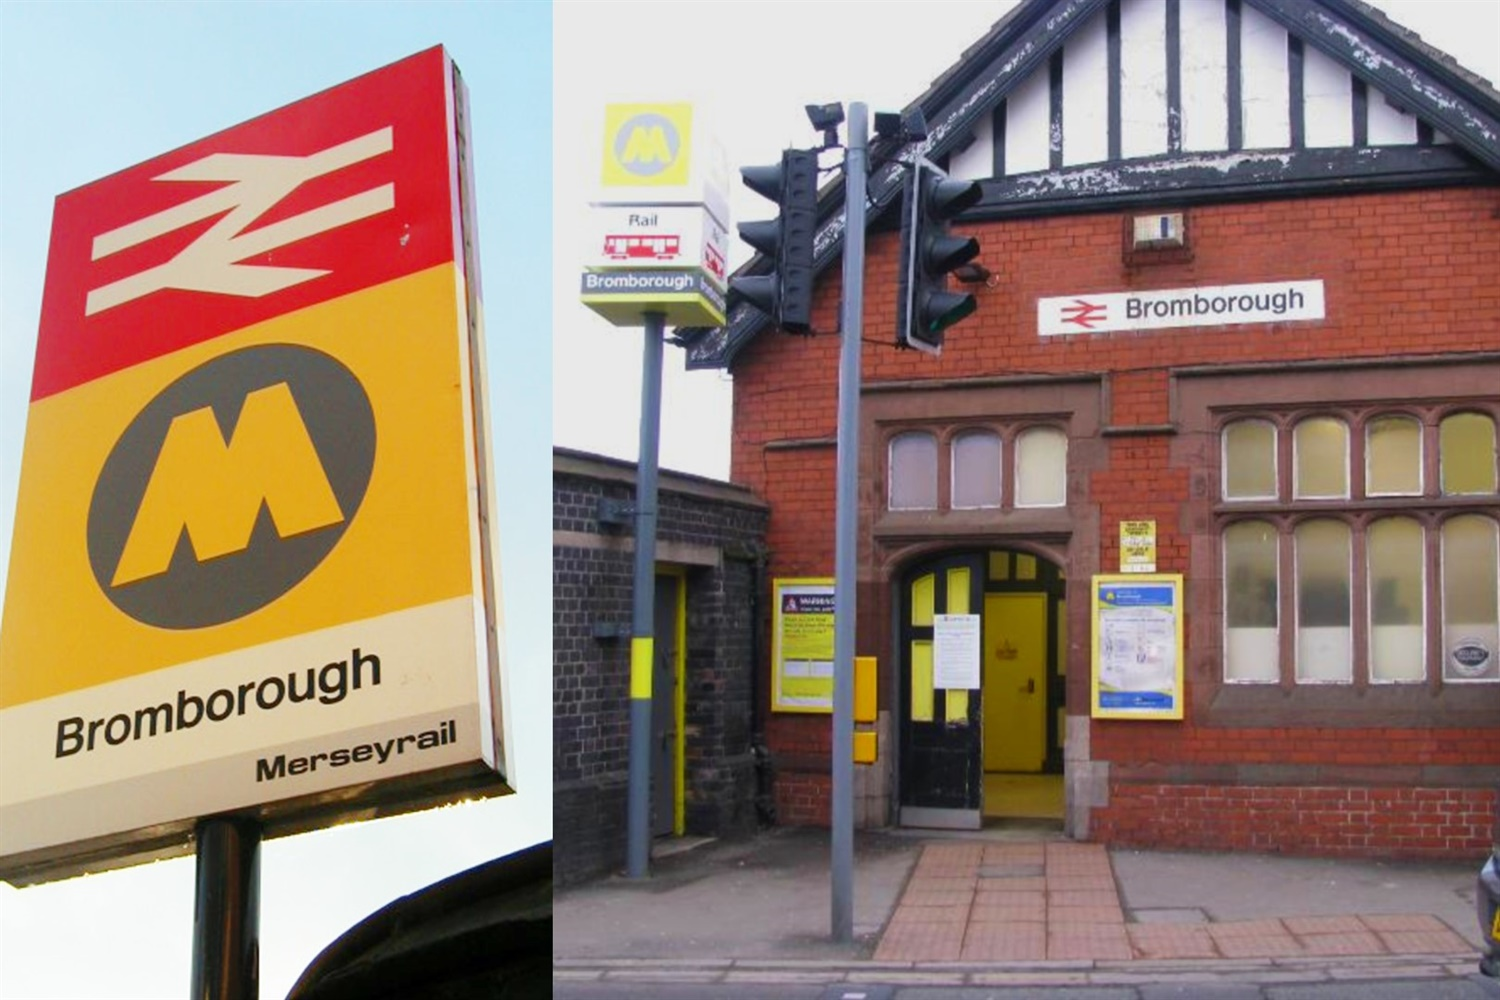 Bromborough station prepares for modern refurbishment